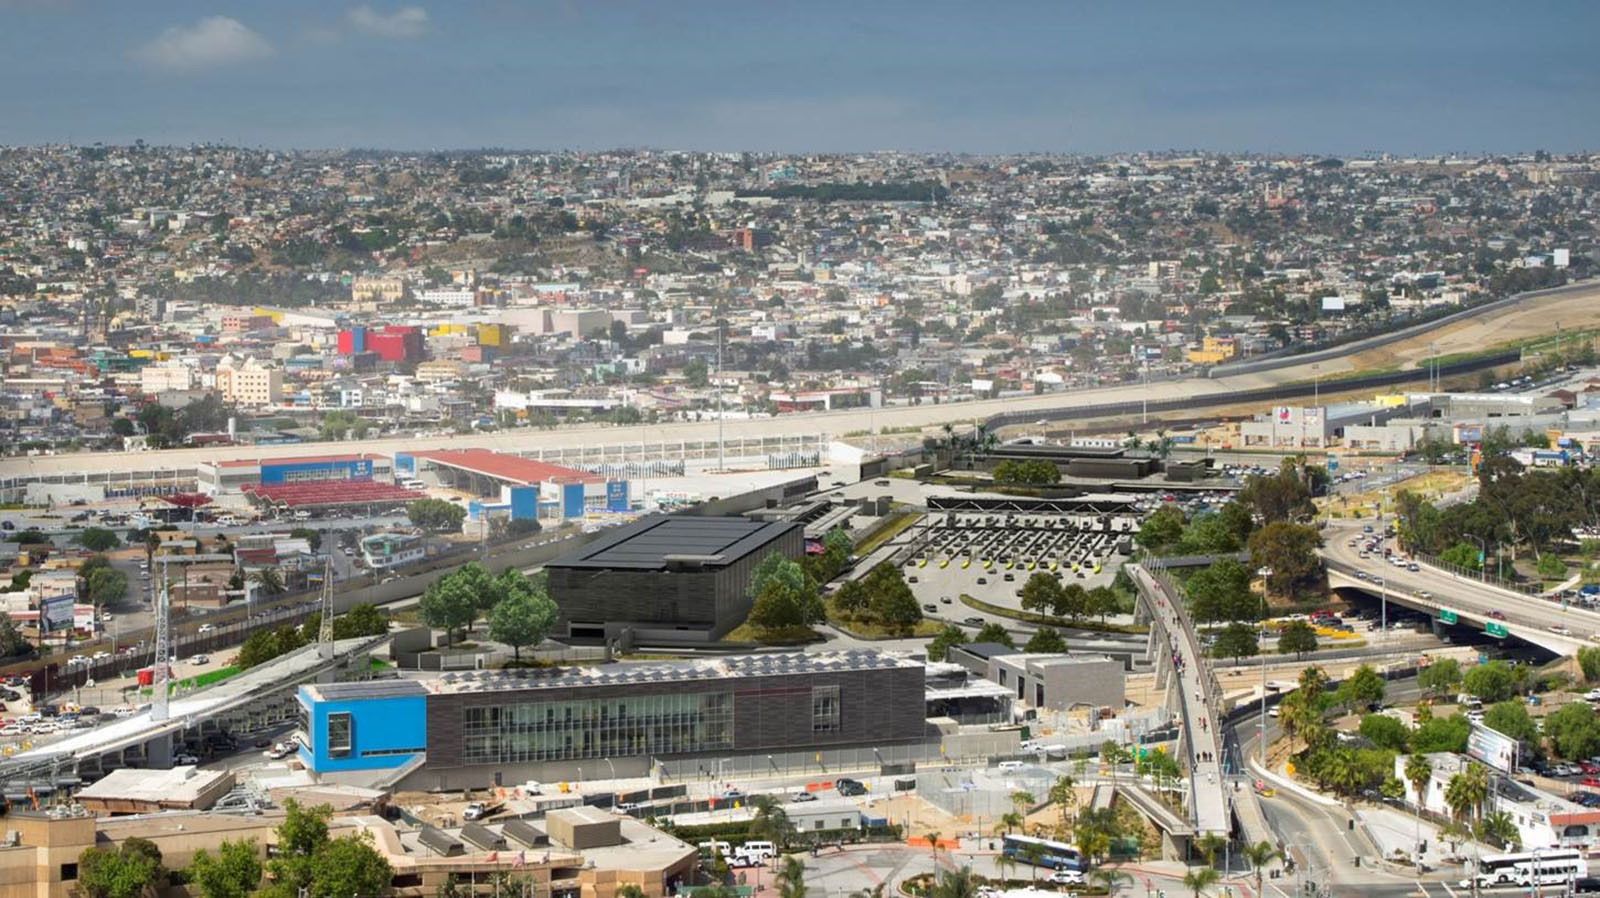 Traffic congestion in San Ysidro produces large amounts of air pollution.